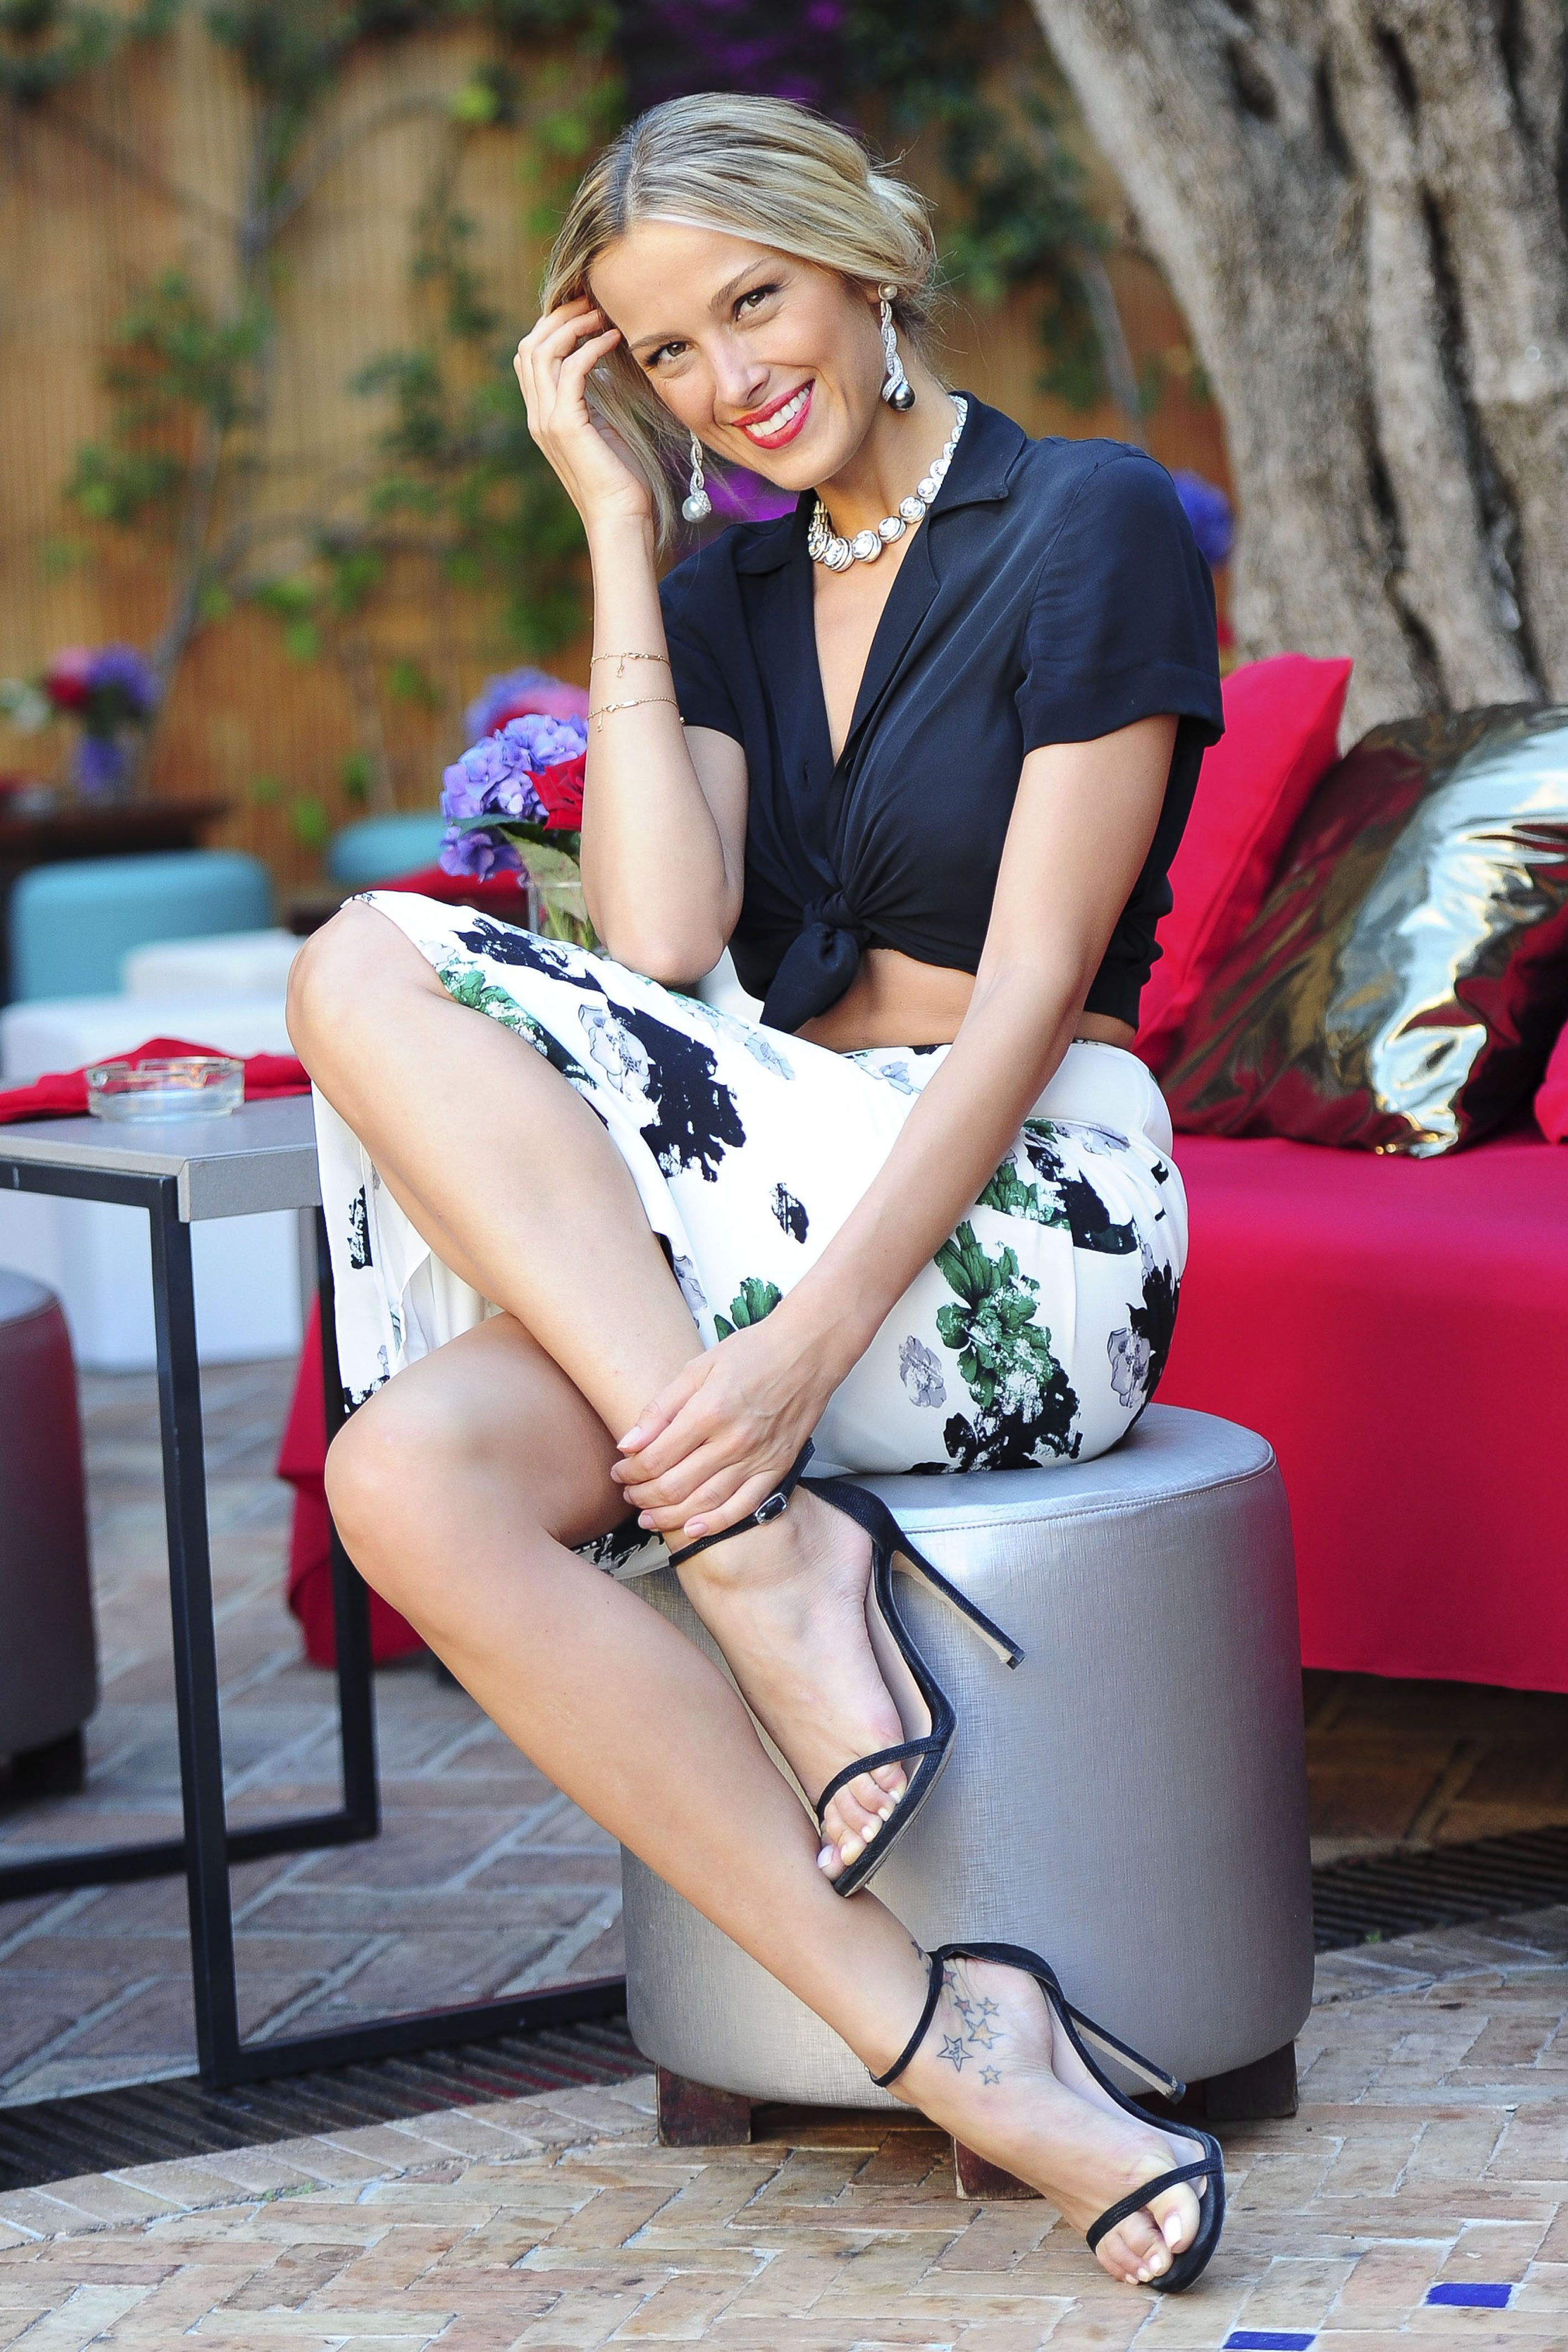 petra_nemcova_on_the_set_of_a_photoshoot_in_marbella_august_3_2014_01_08042014083318u